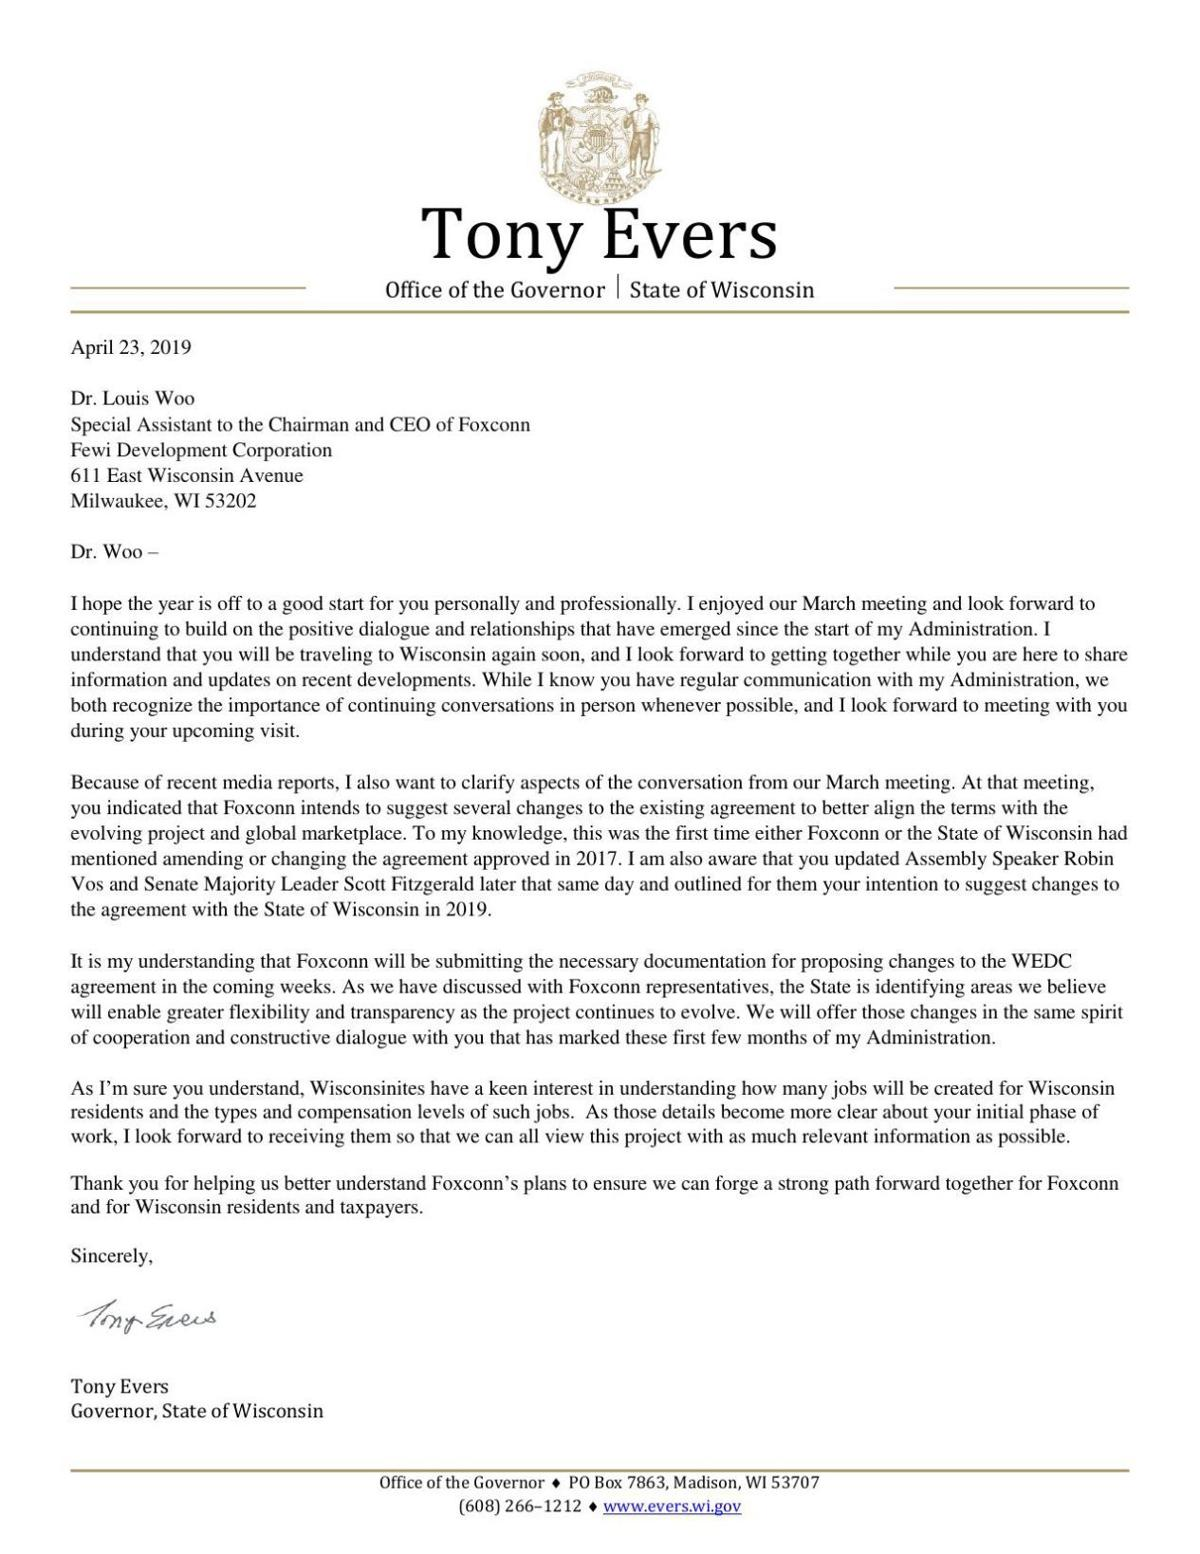 Evers Foxconn letter to Louis Woo